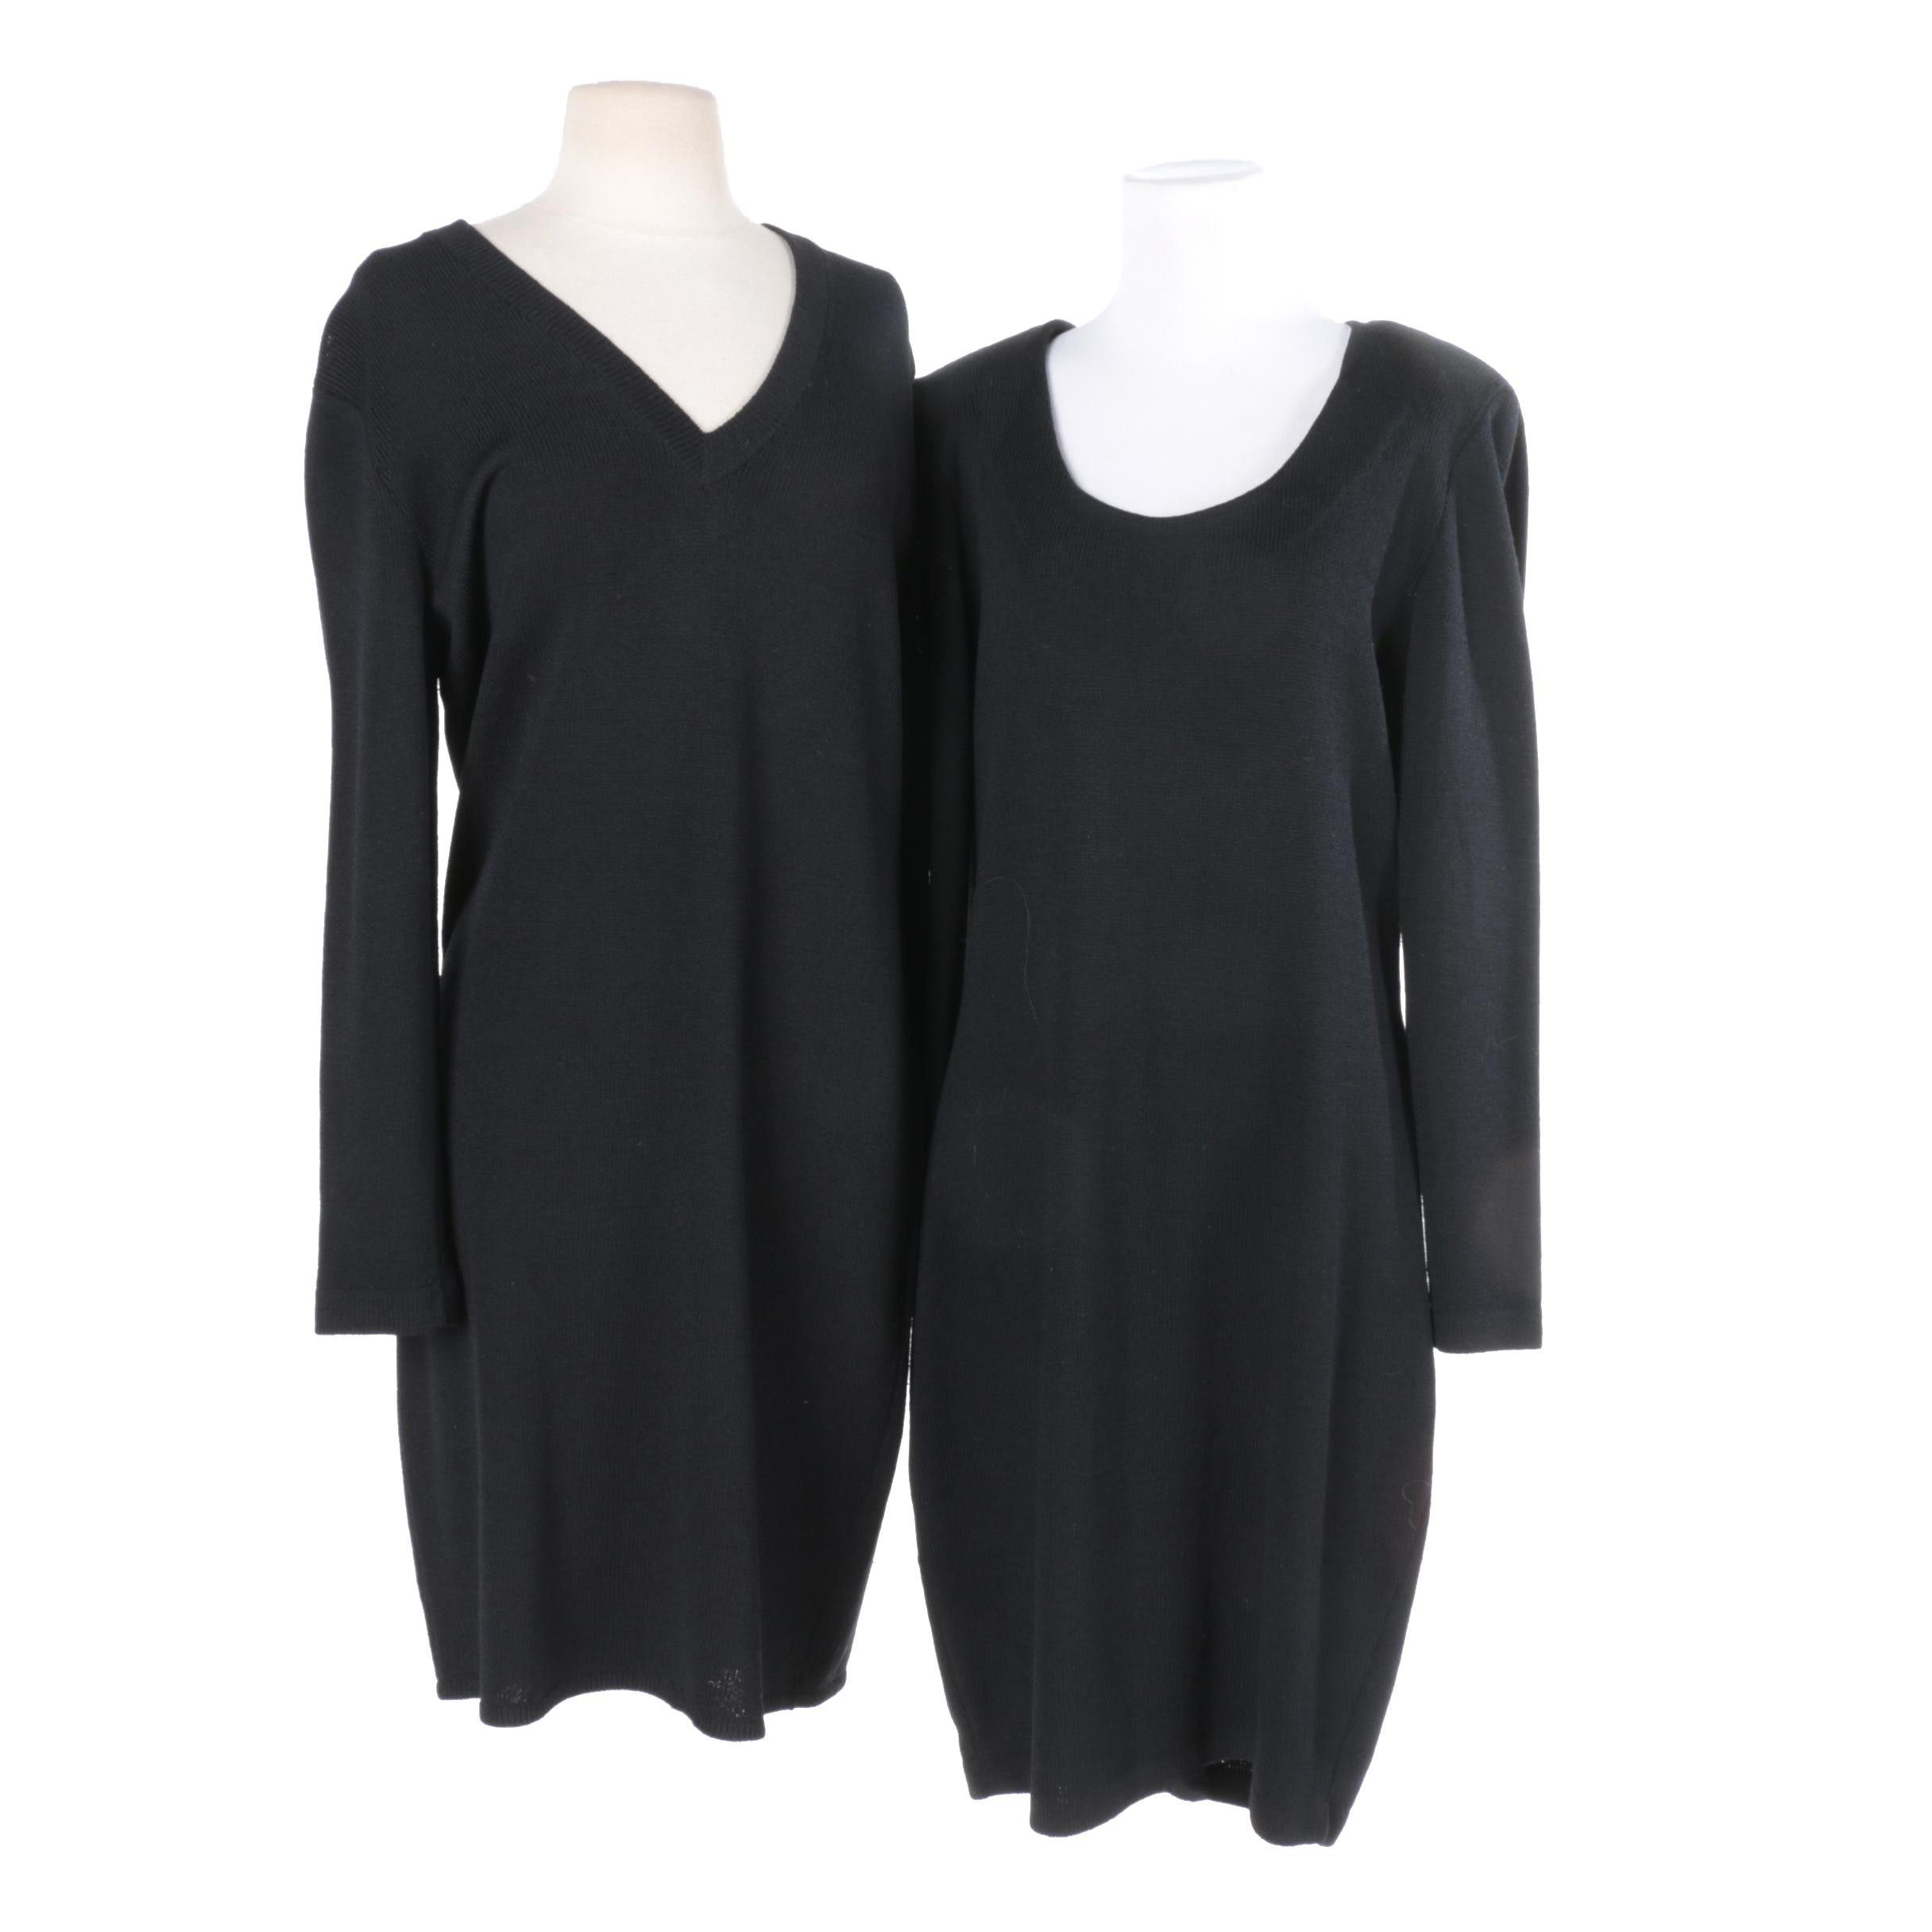 St. John Black Knit Dresses